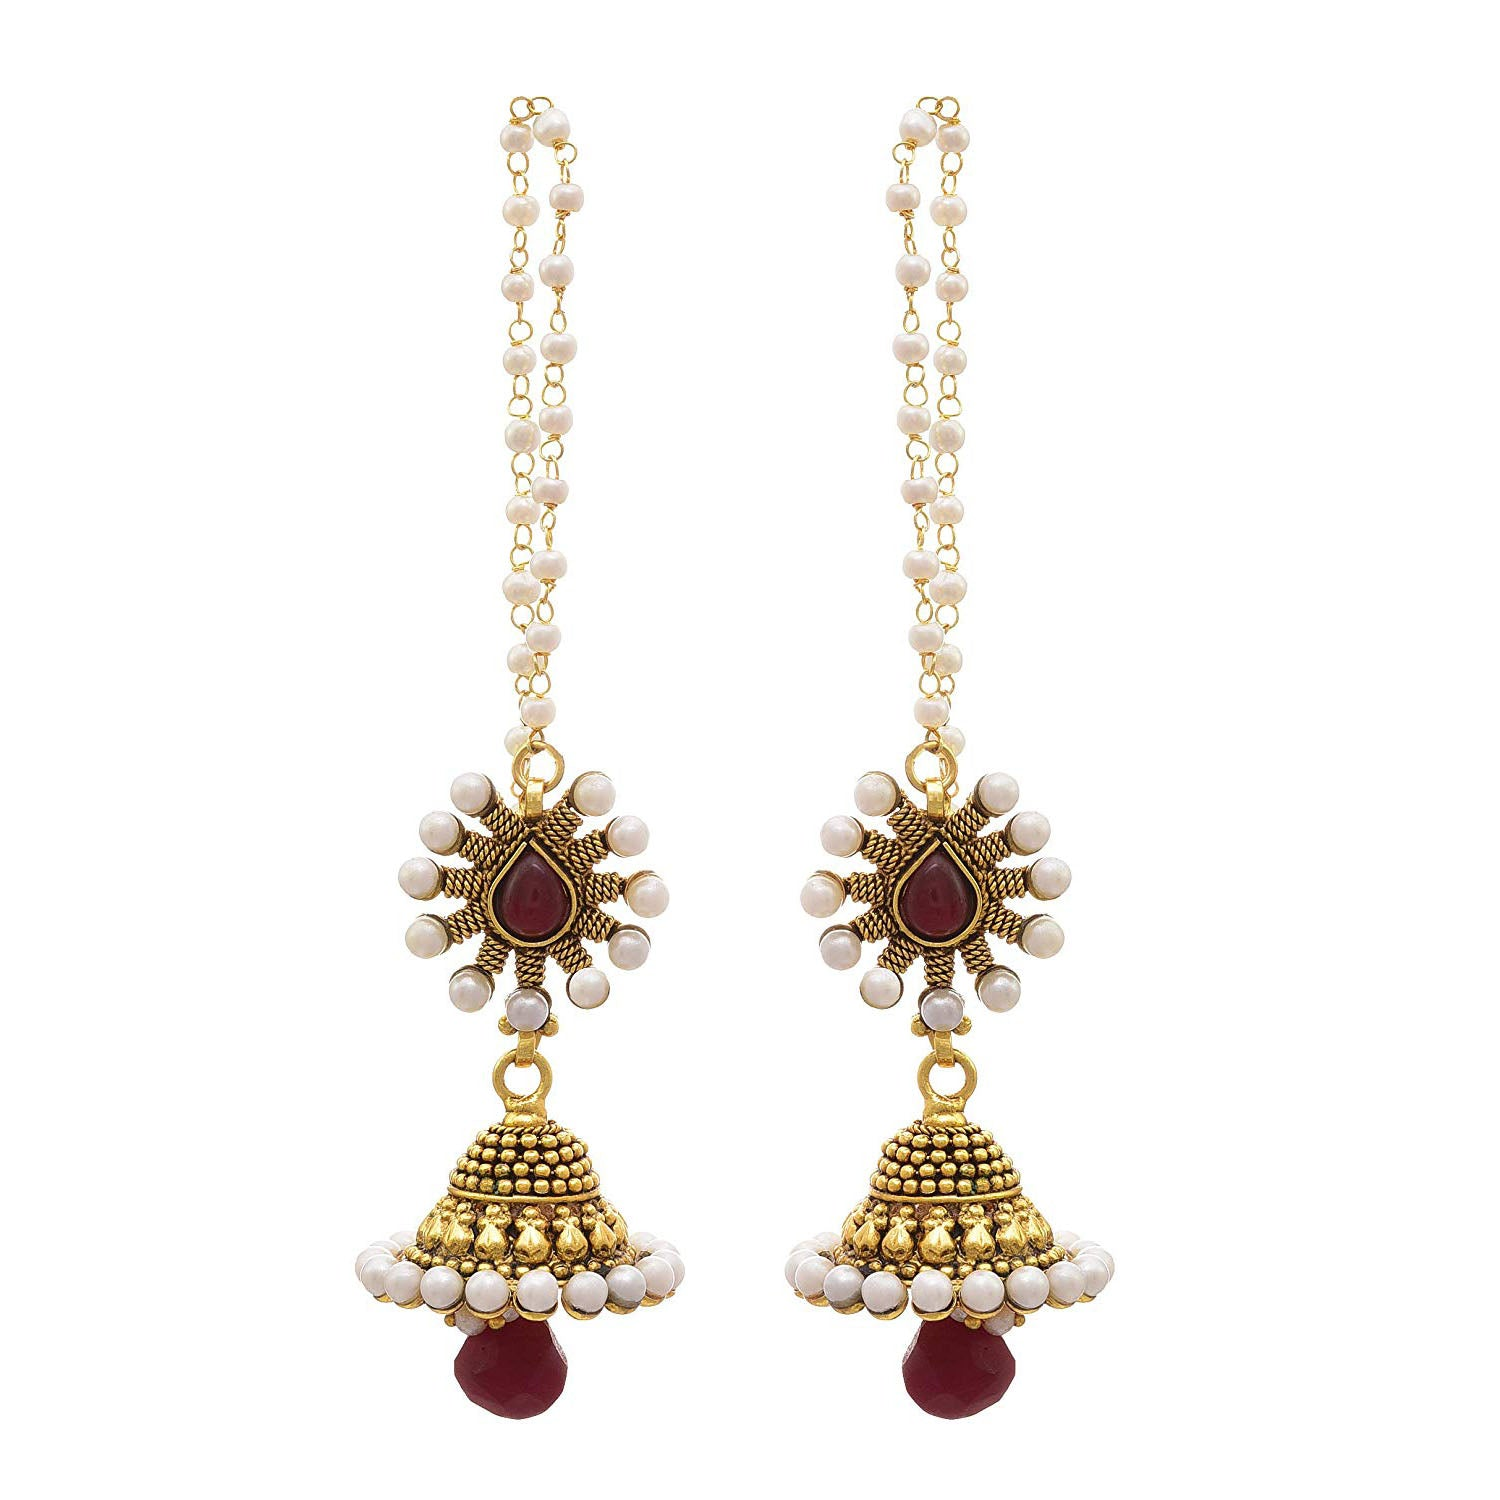 JFL - Traditional Ethnic One Gram Gold Plated Pearls Designer Jhumki Earrings for Women & Girls.